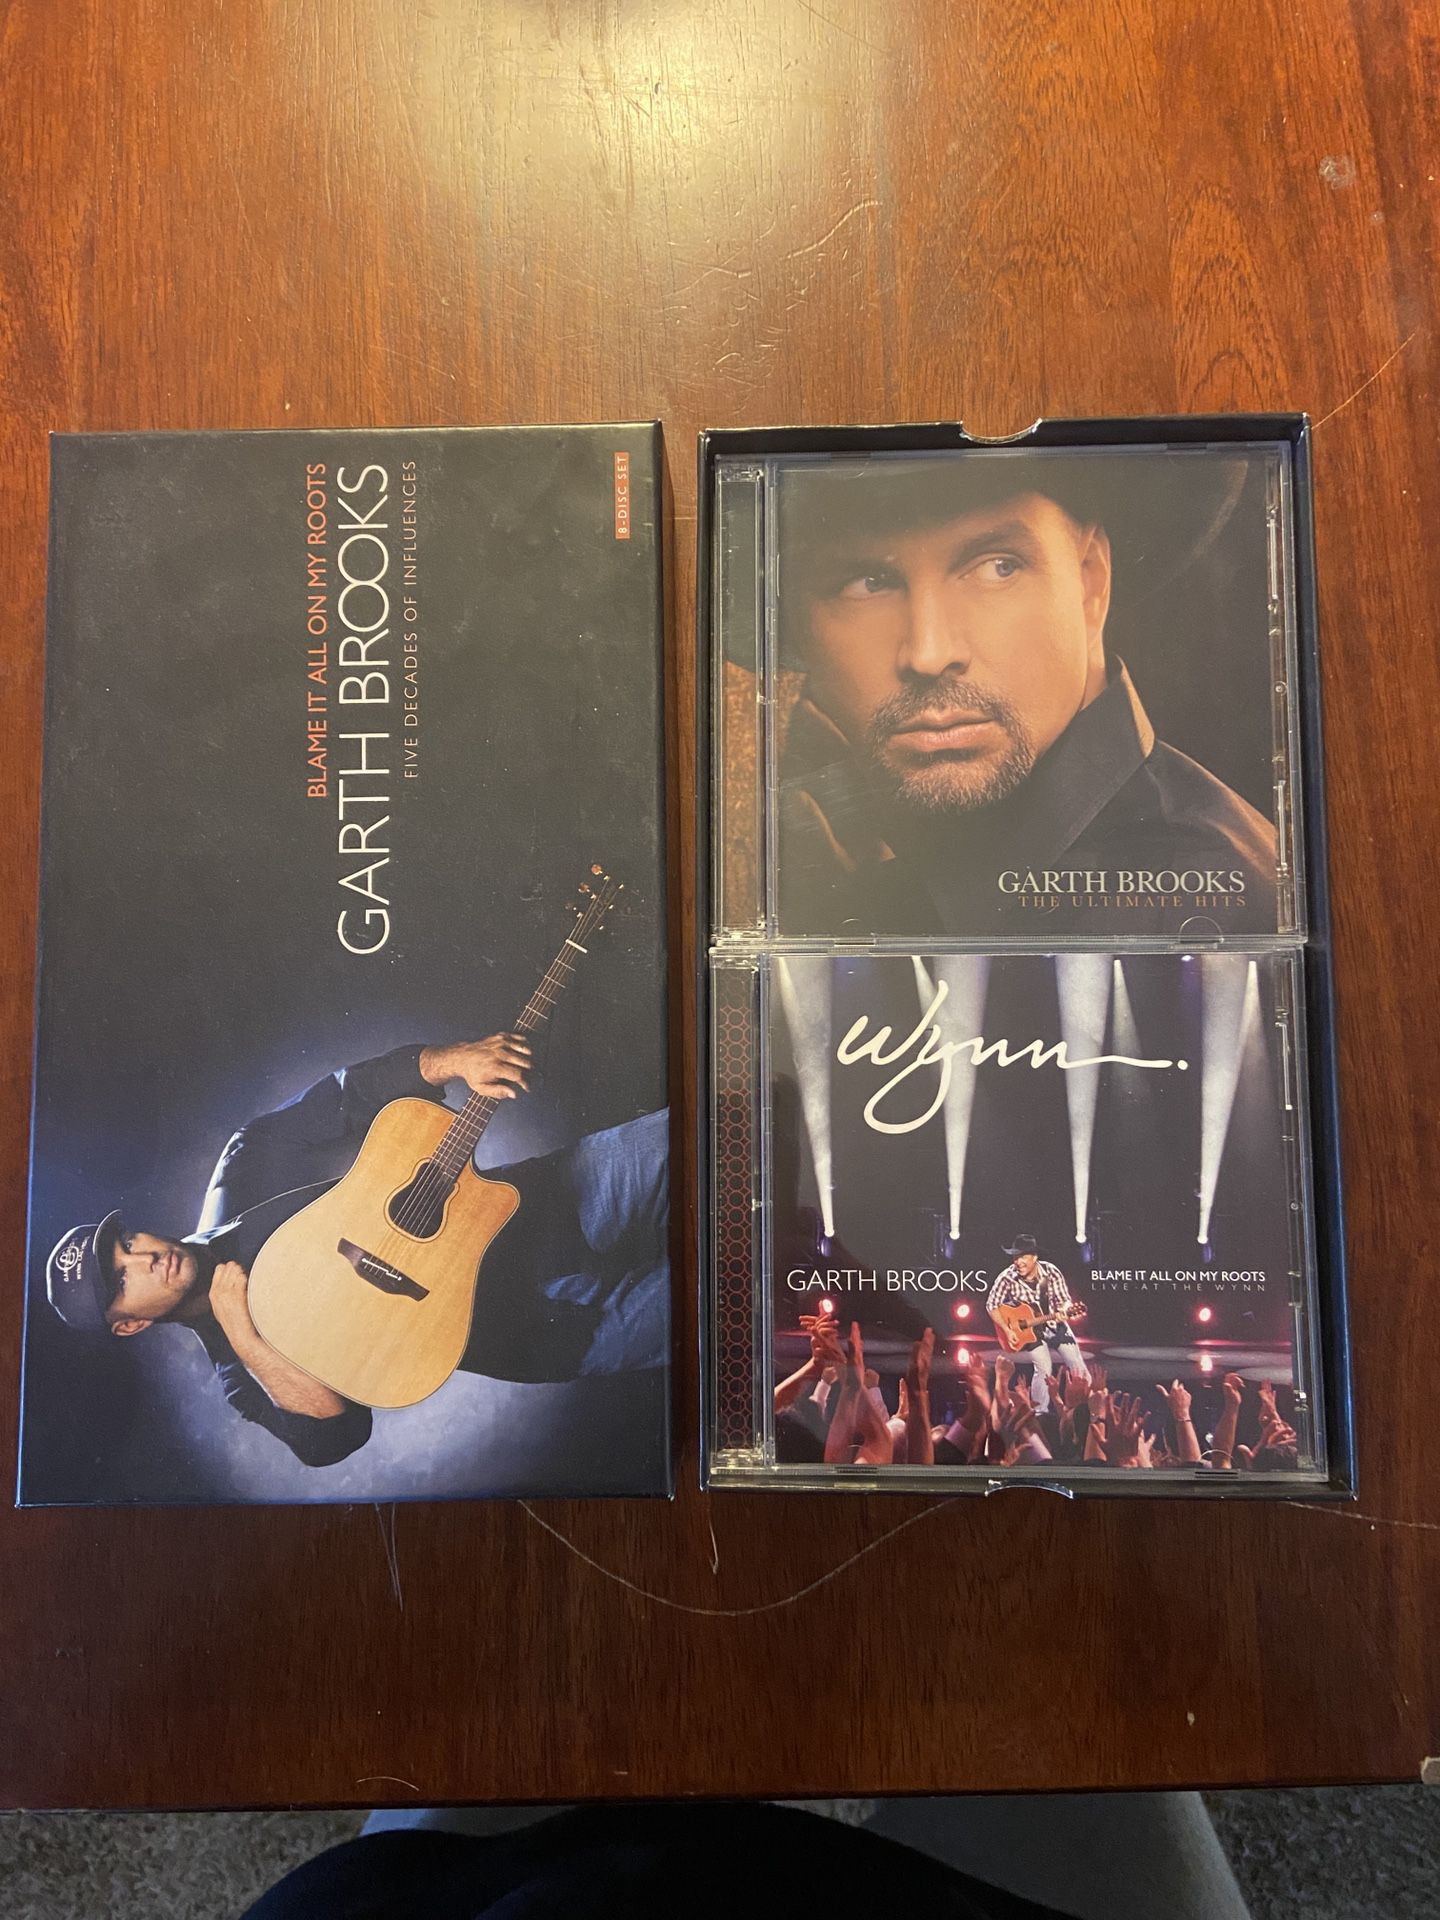 Garth Brooks 8 Disk Set (Blame It All On My Roots)